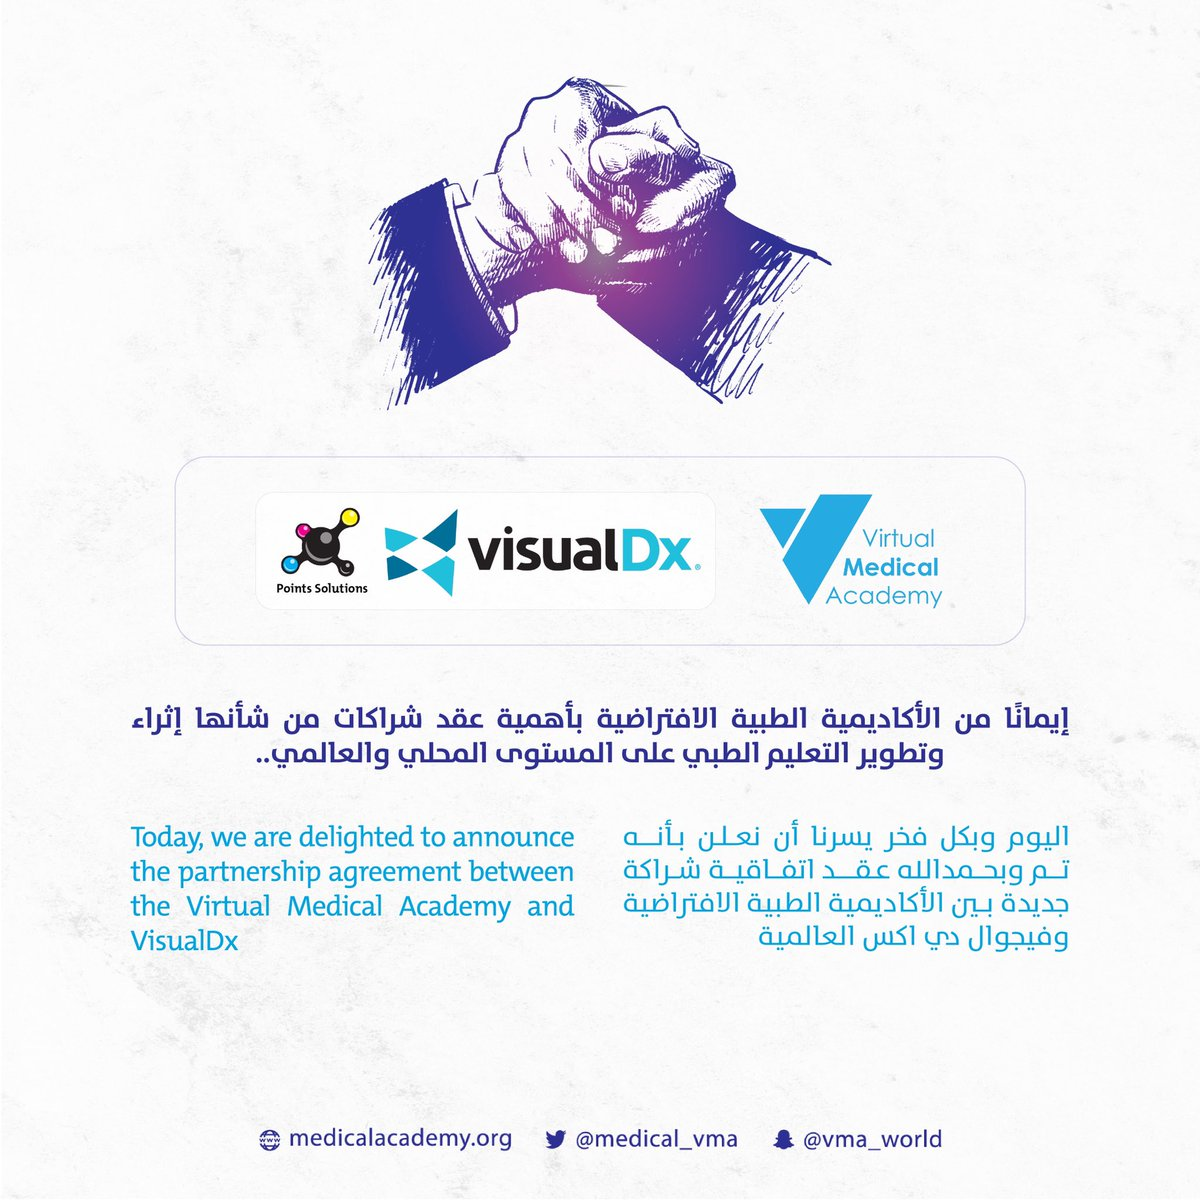 We're keen to provide an enriching educational environment that contributes to raising the human life efficiency by providing education resources that will develop healthcare professionals, today we're delighted to announce a new partnership agreement with @VisualDx ✨